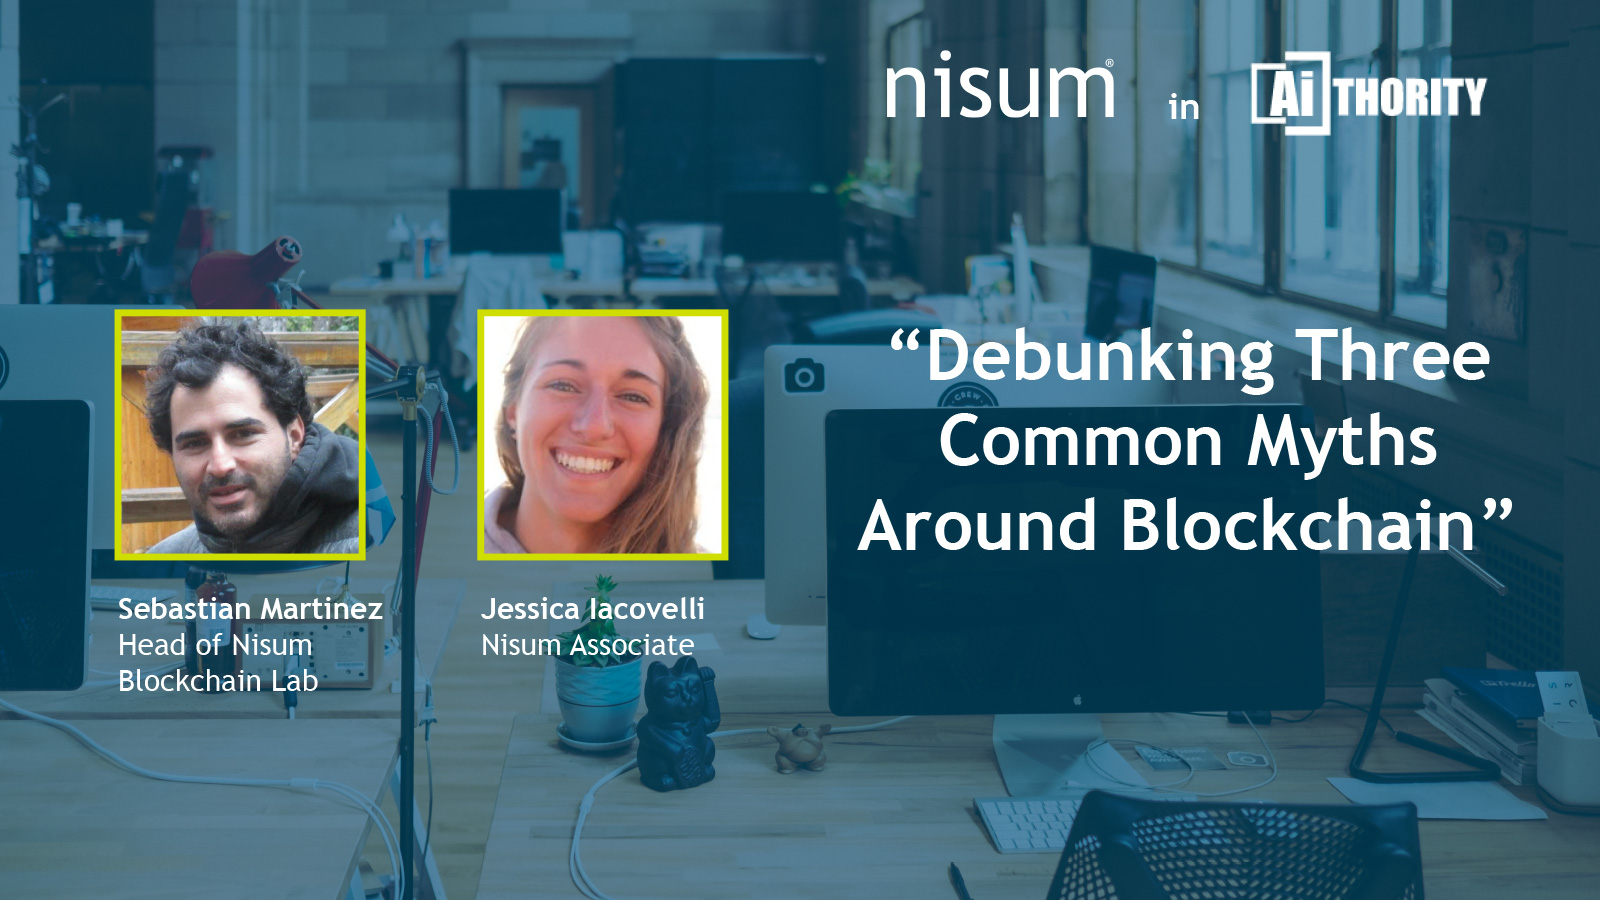 Sebastian-Jessica-Aithority-Debunking_Common_Myths_Blockchain-1600px-Banner